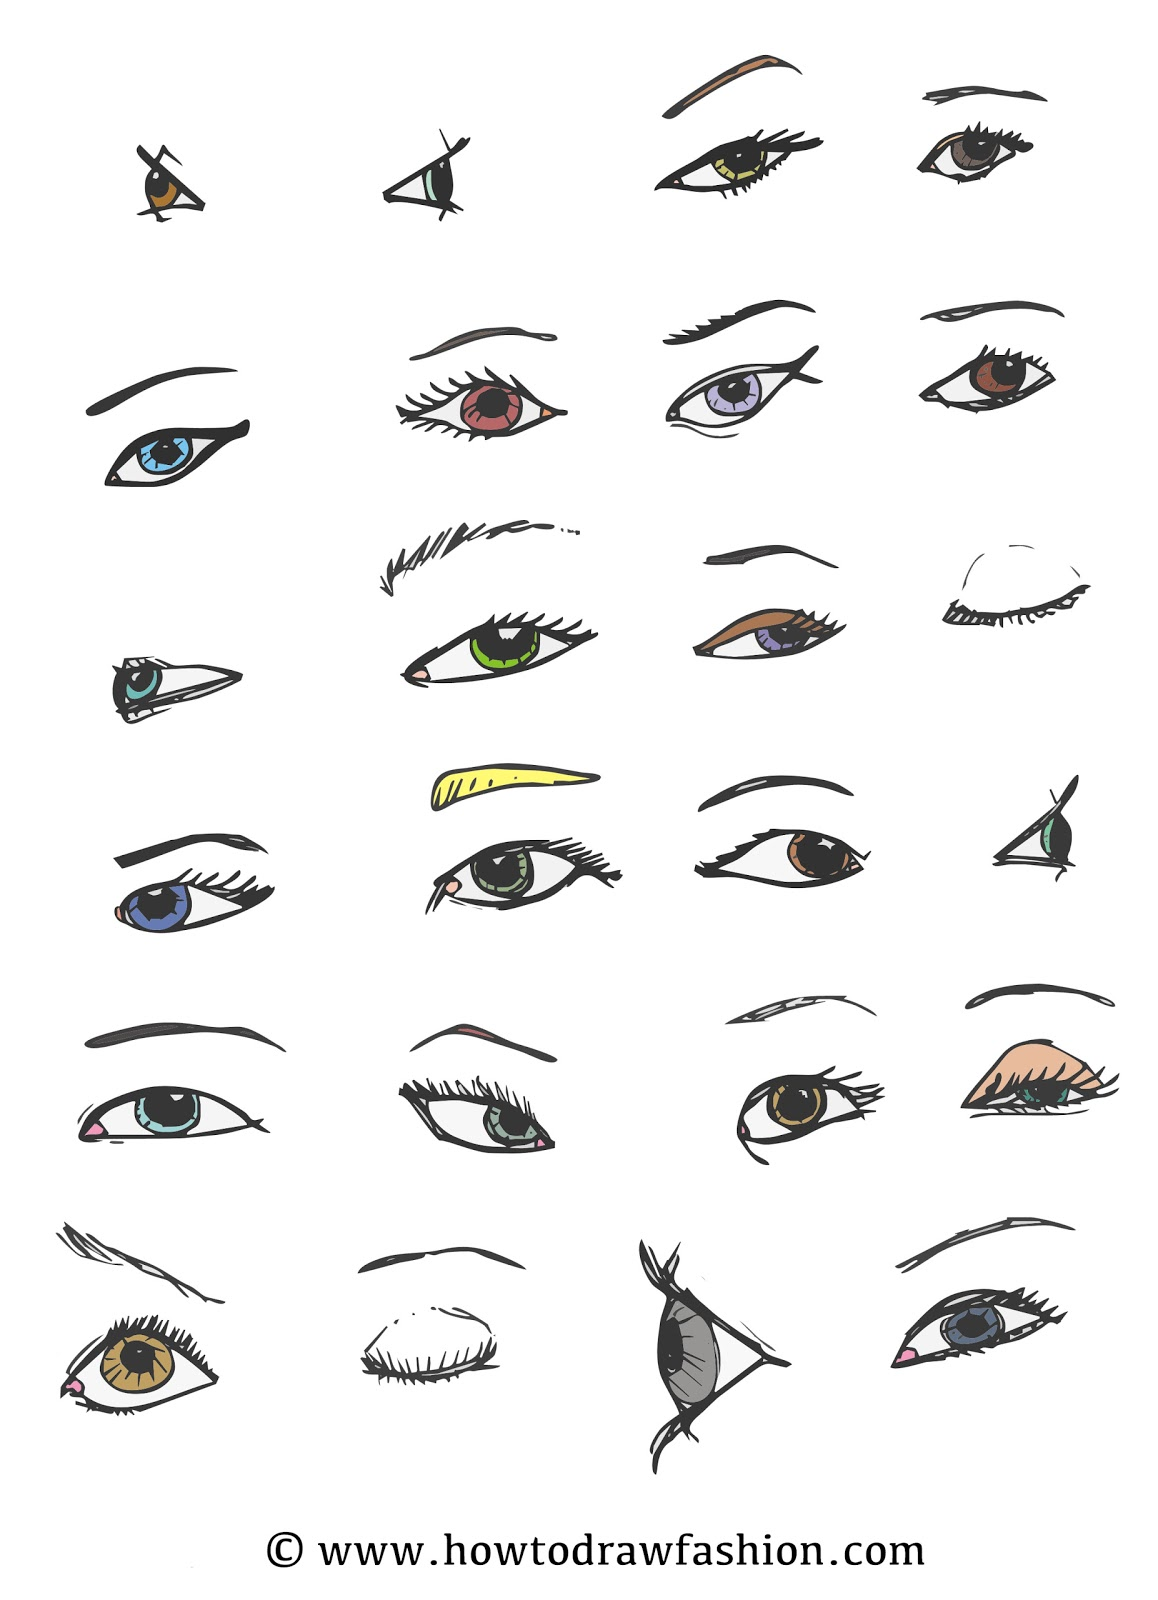 How To Draw Fashion Variations Of The Eye